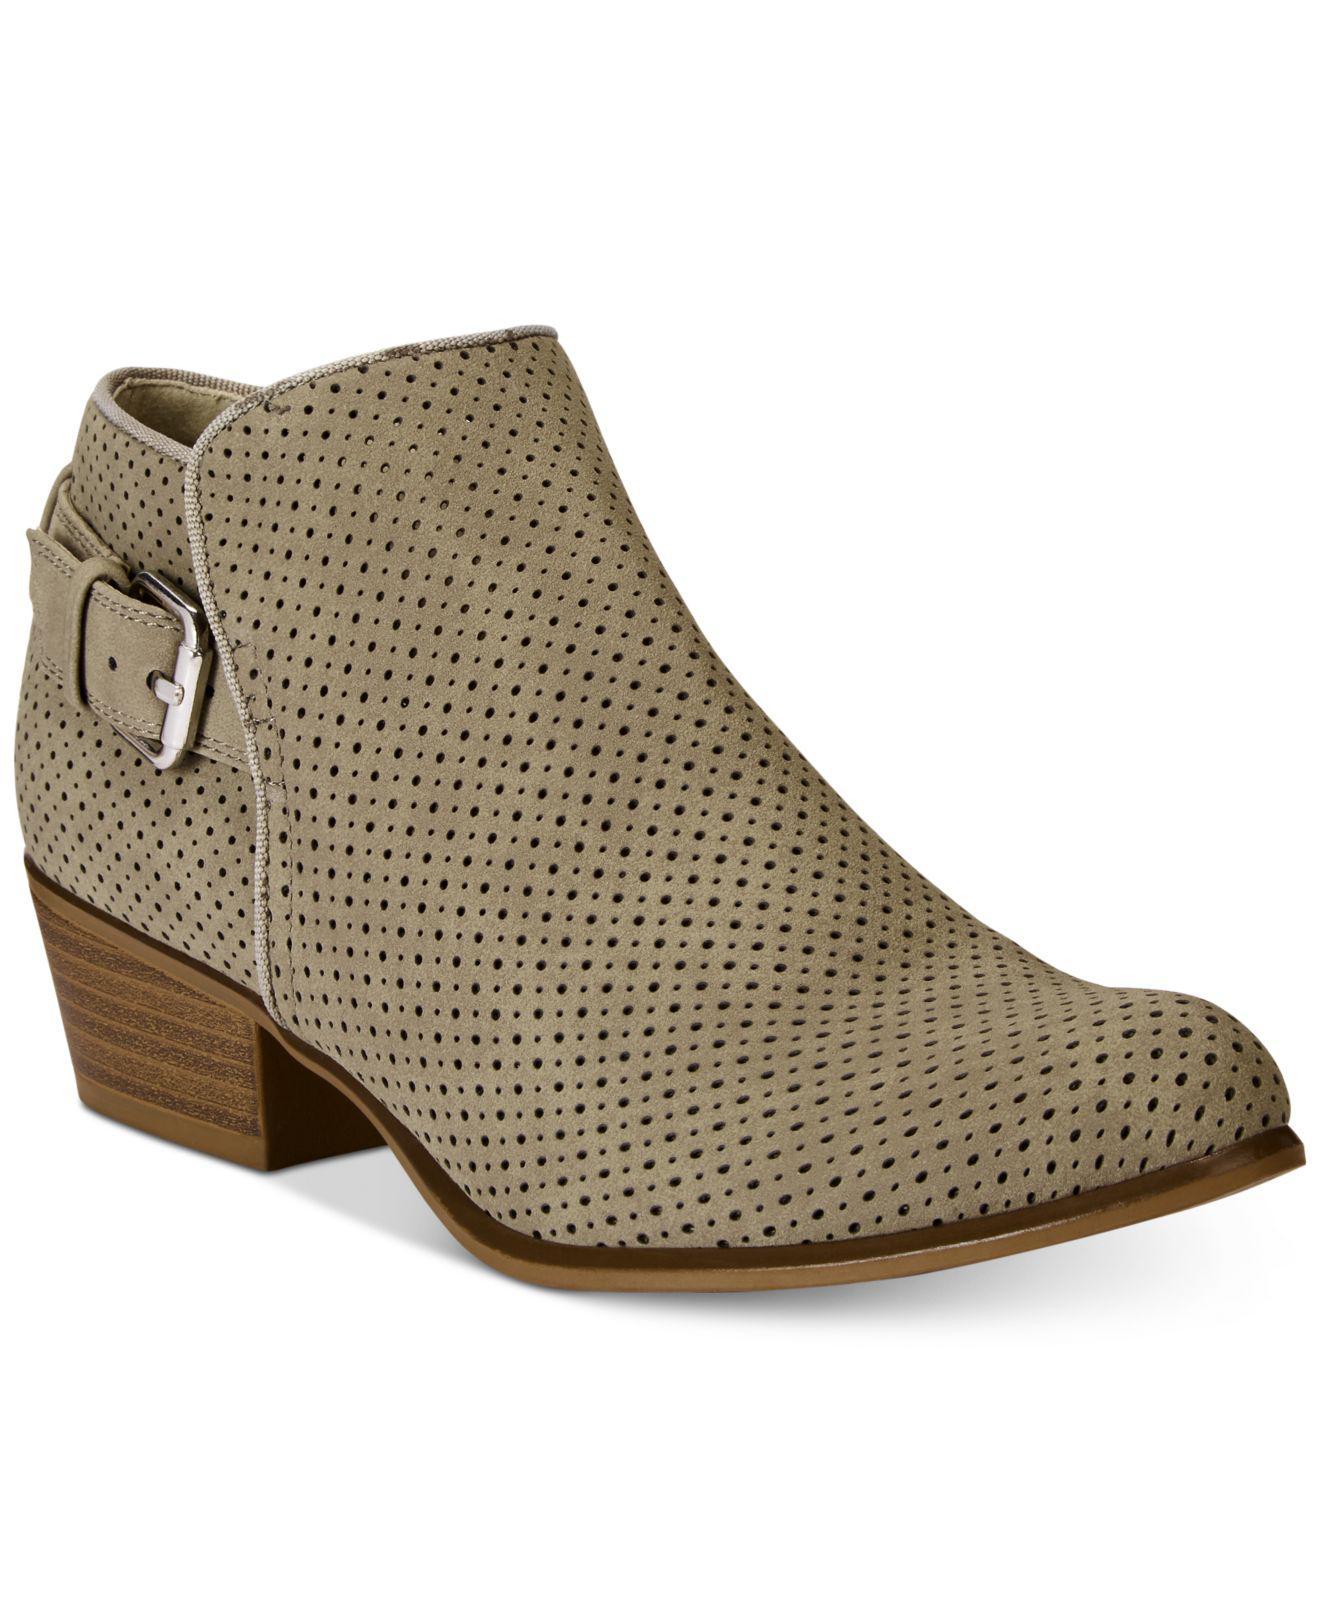 Esprit. Women's Talia Perforated Ankle Booties